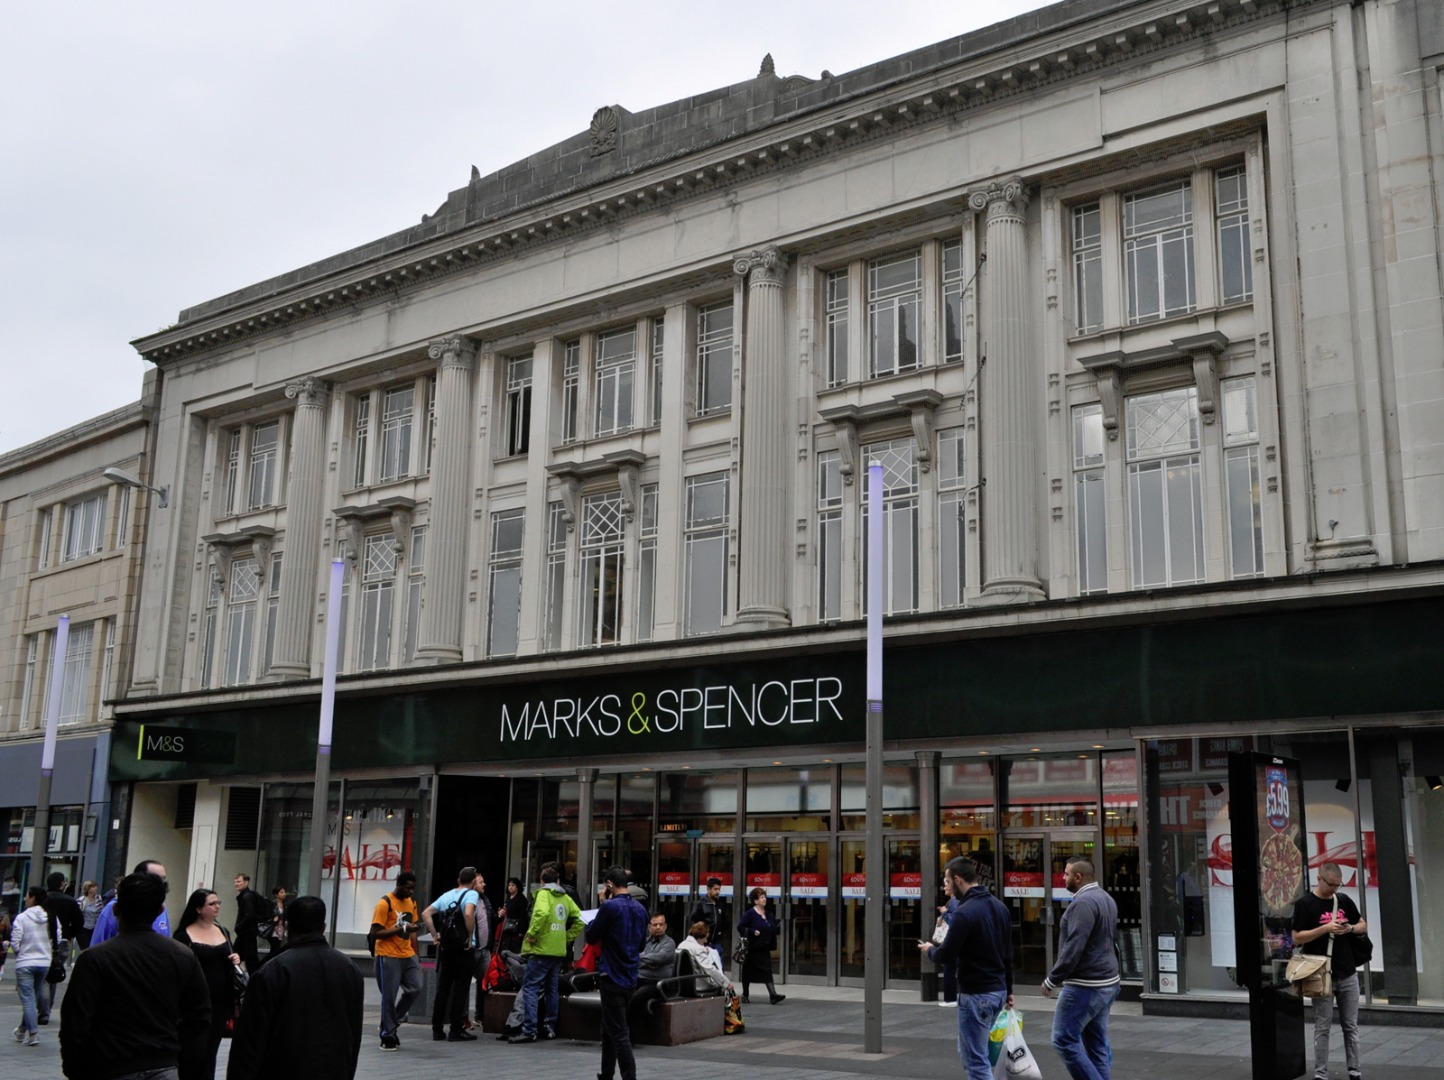 Marks & Spencer in Leicester City Centre